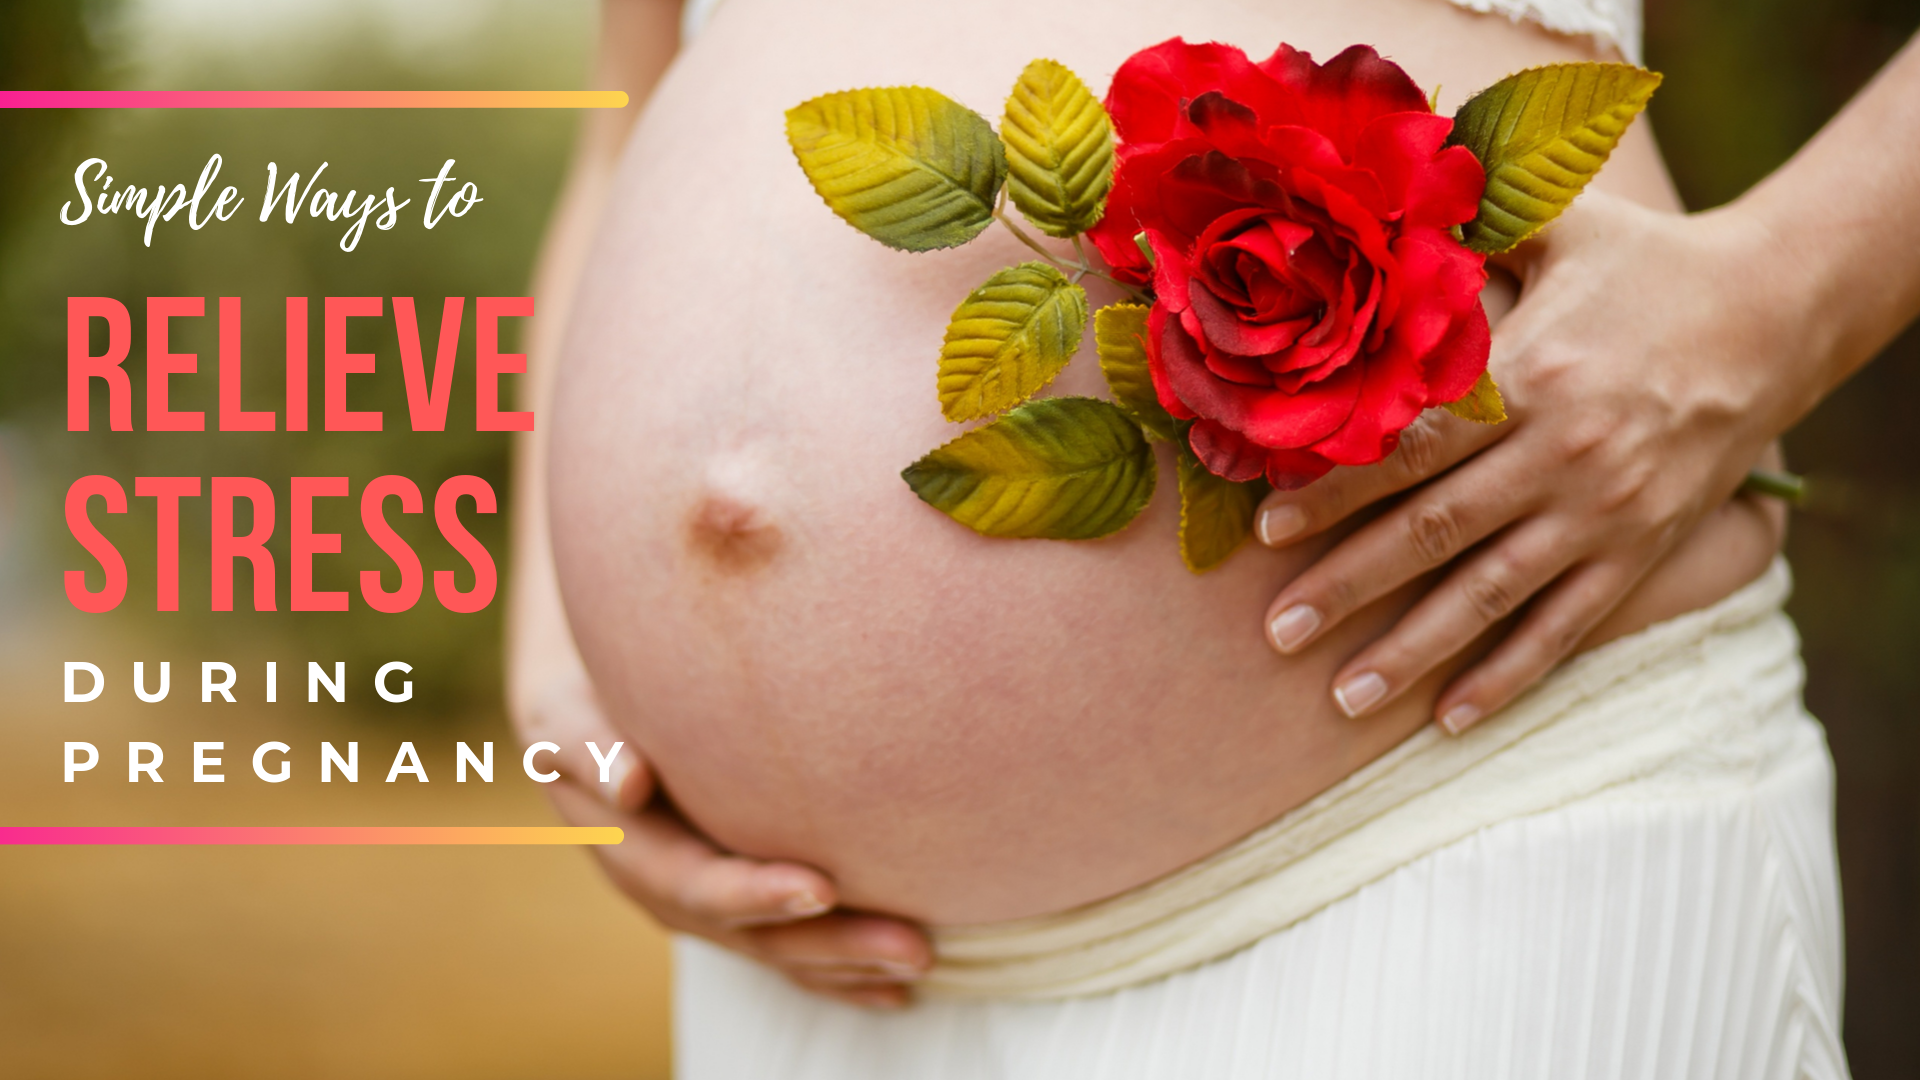 Simple Ways to Relieve Stress During Pregnancy